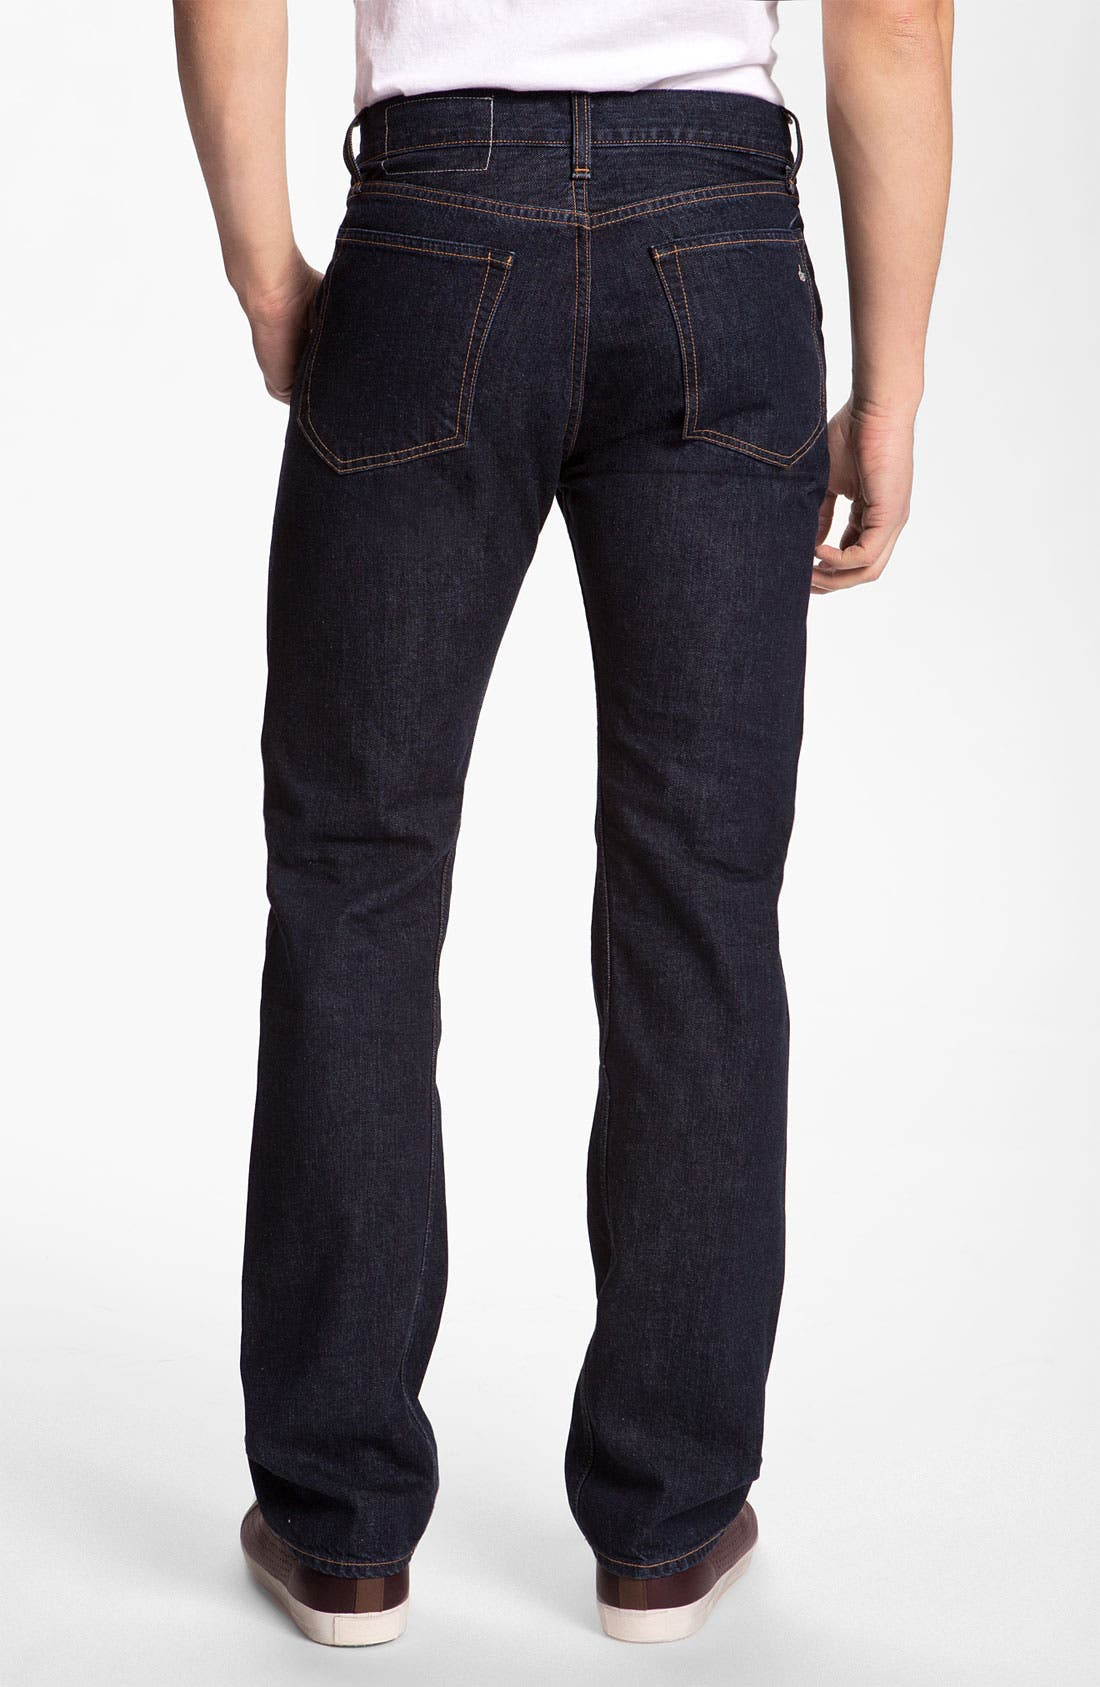 Alternate Image 1 Selected - rag & bone 'RB11X' Straight Leg Jeans